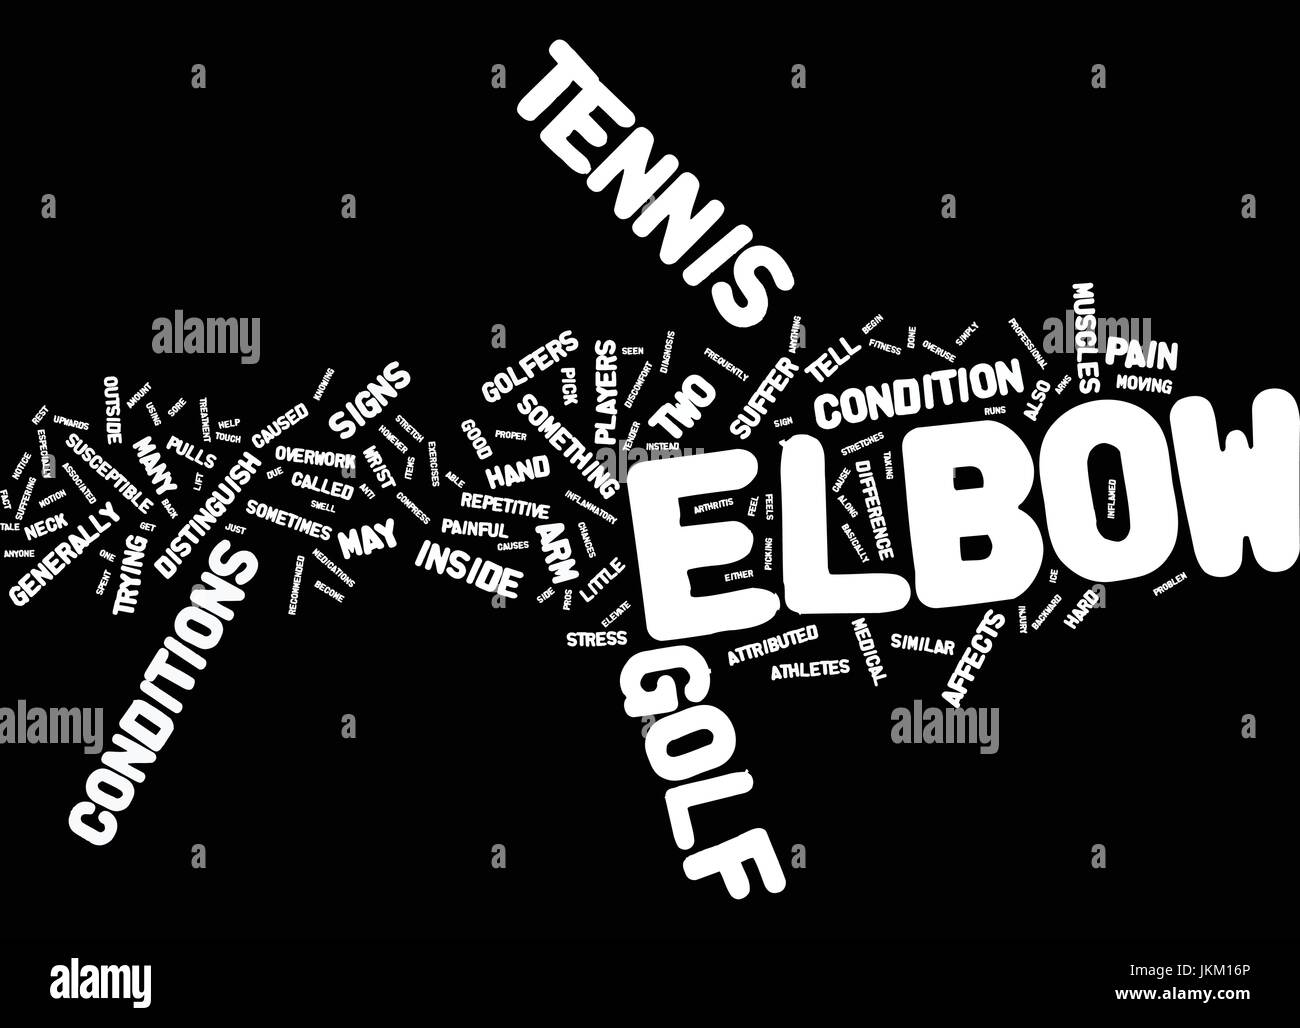 GOLF ELBOW OR TENNIS ELBOW THE TELL TALE SIGNS Text Background Word Cloud Concept Stock Vector